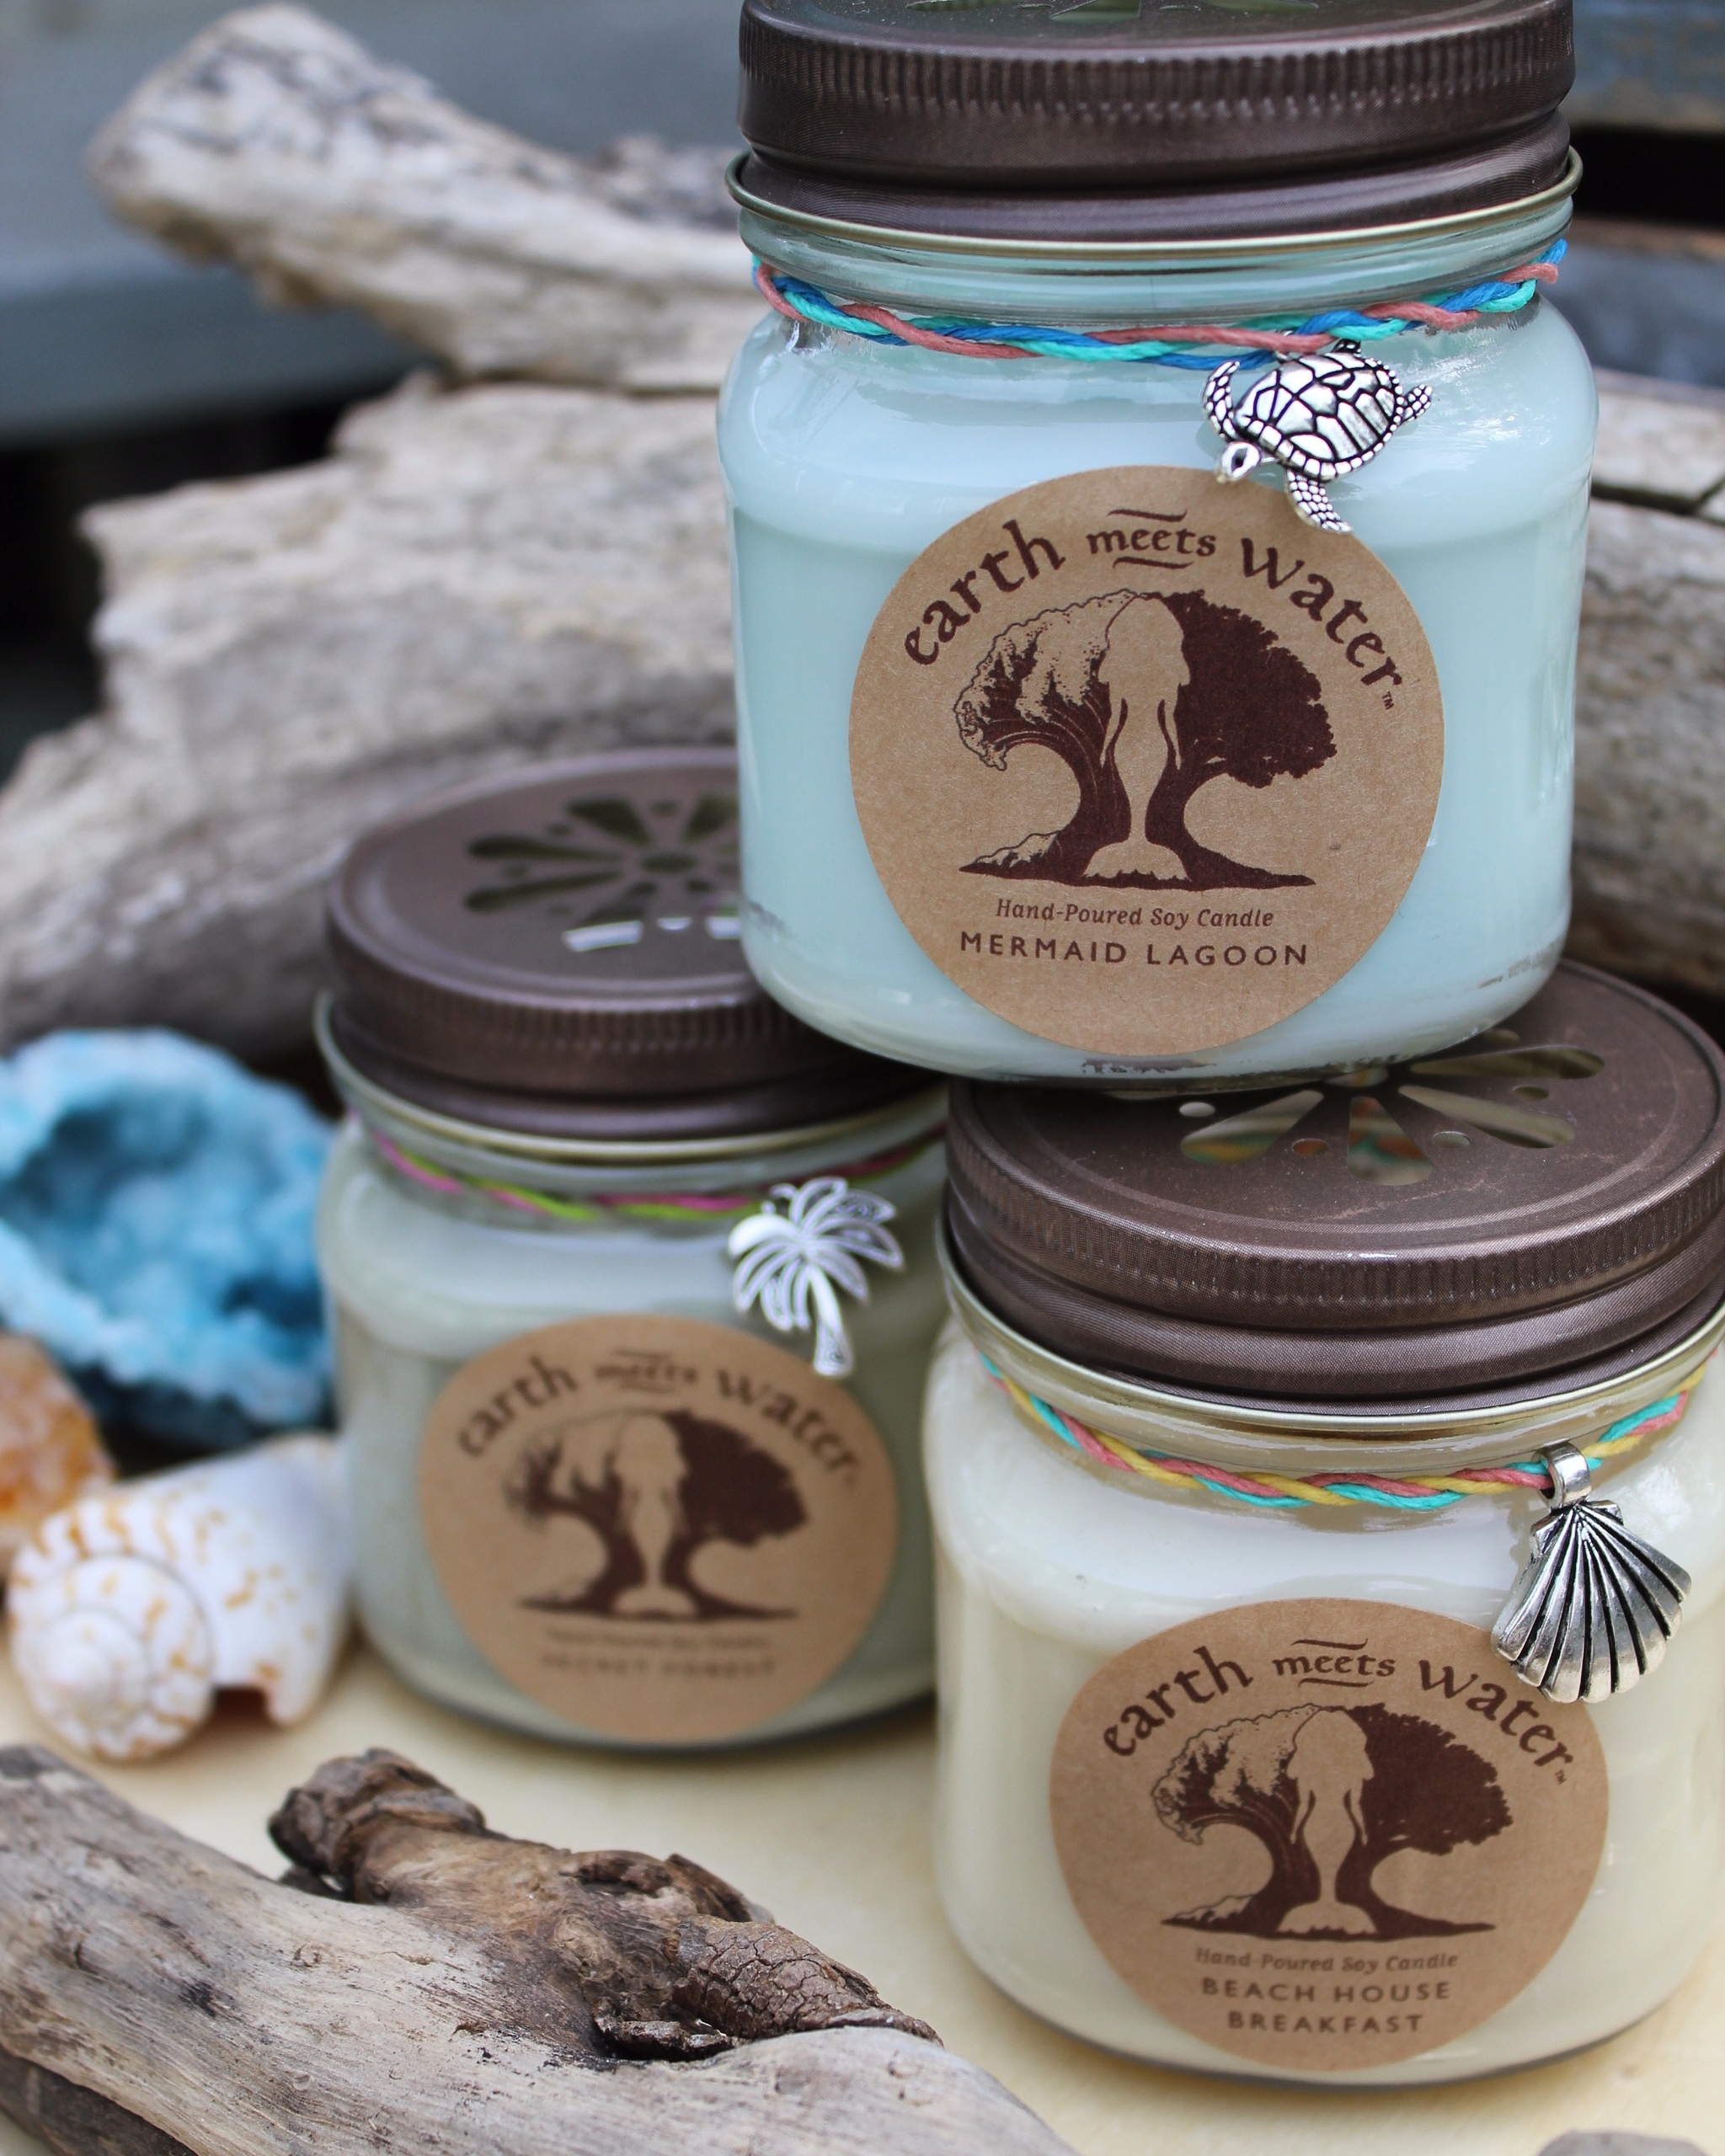 8 oz hand poured soy candles - soycandles - earthmeetswater | ello